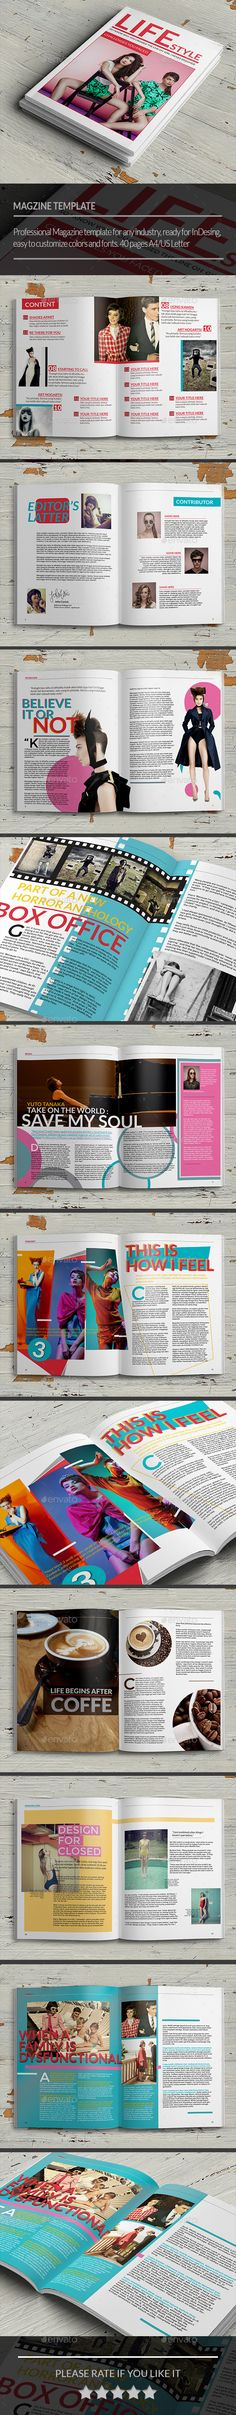 Multipurpose Magazine Template by siomipan  Multipurpose Magazine TemplateThis is a professional and clean grunge InDesign magazine template that can be used for any type o